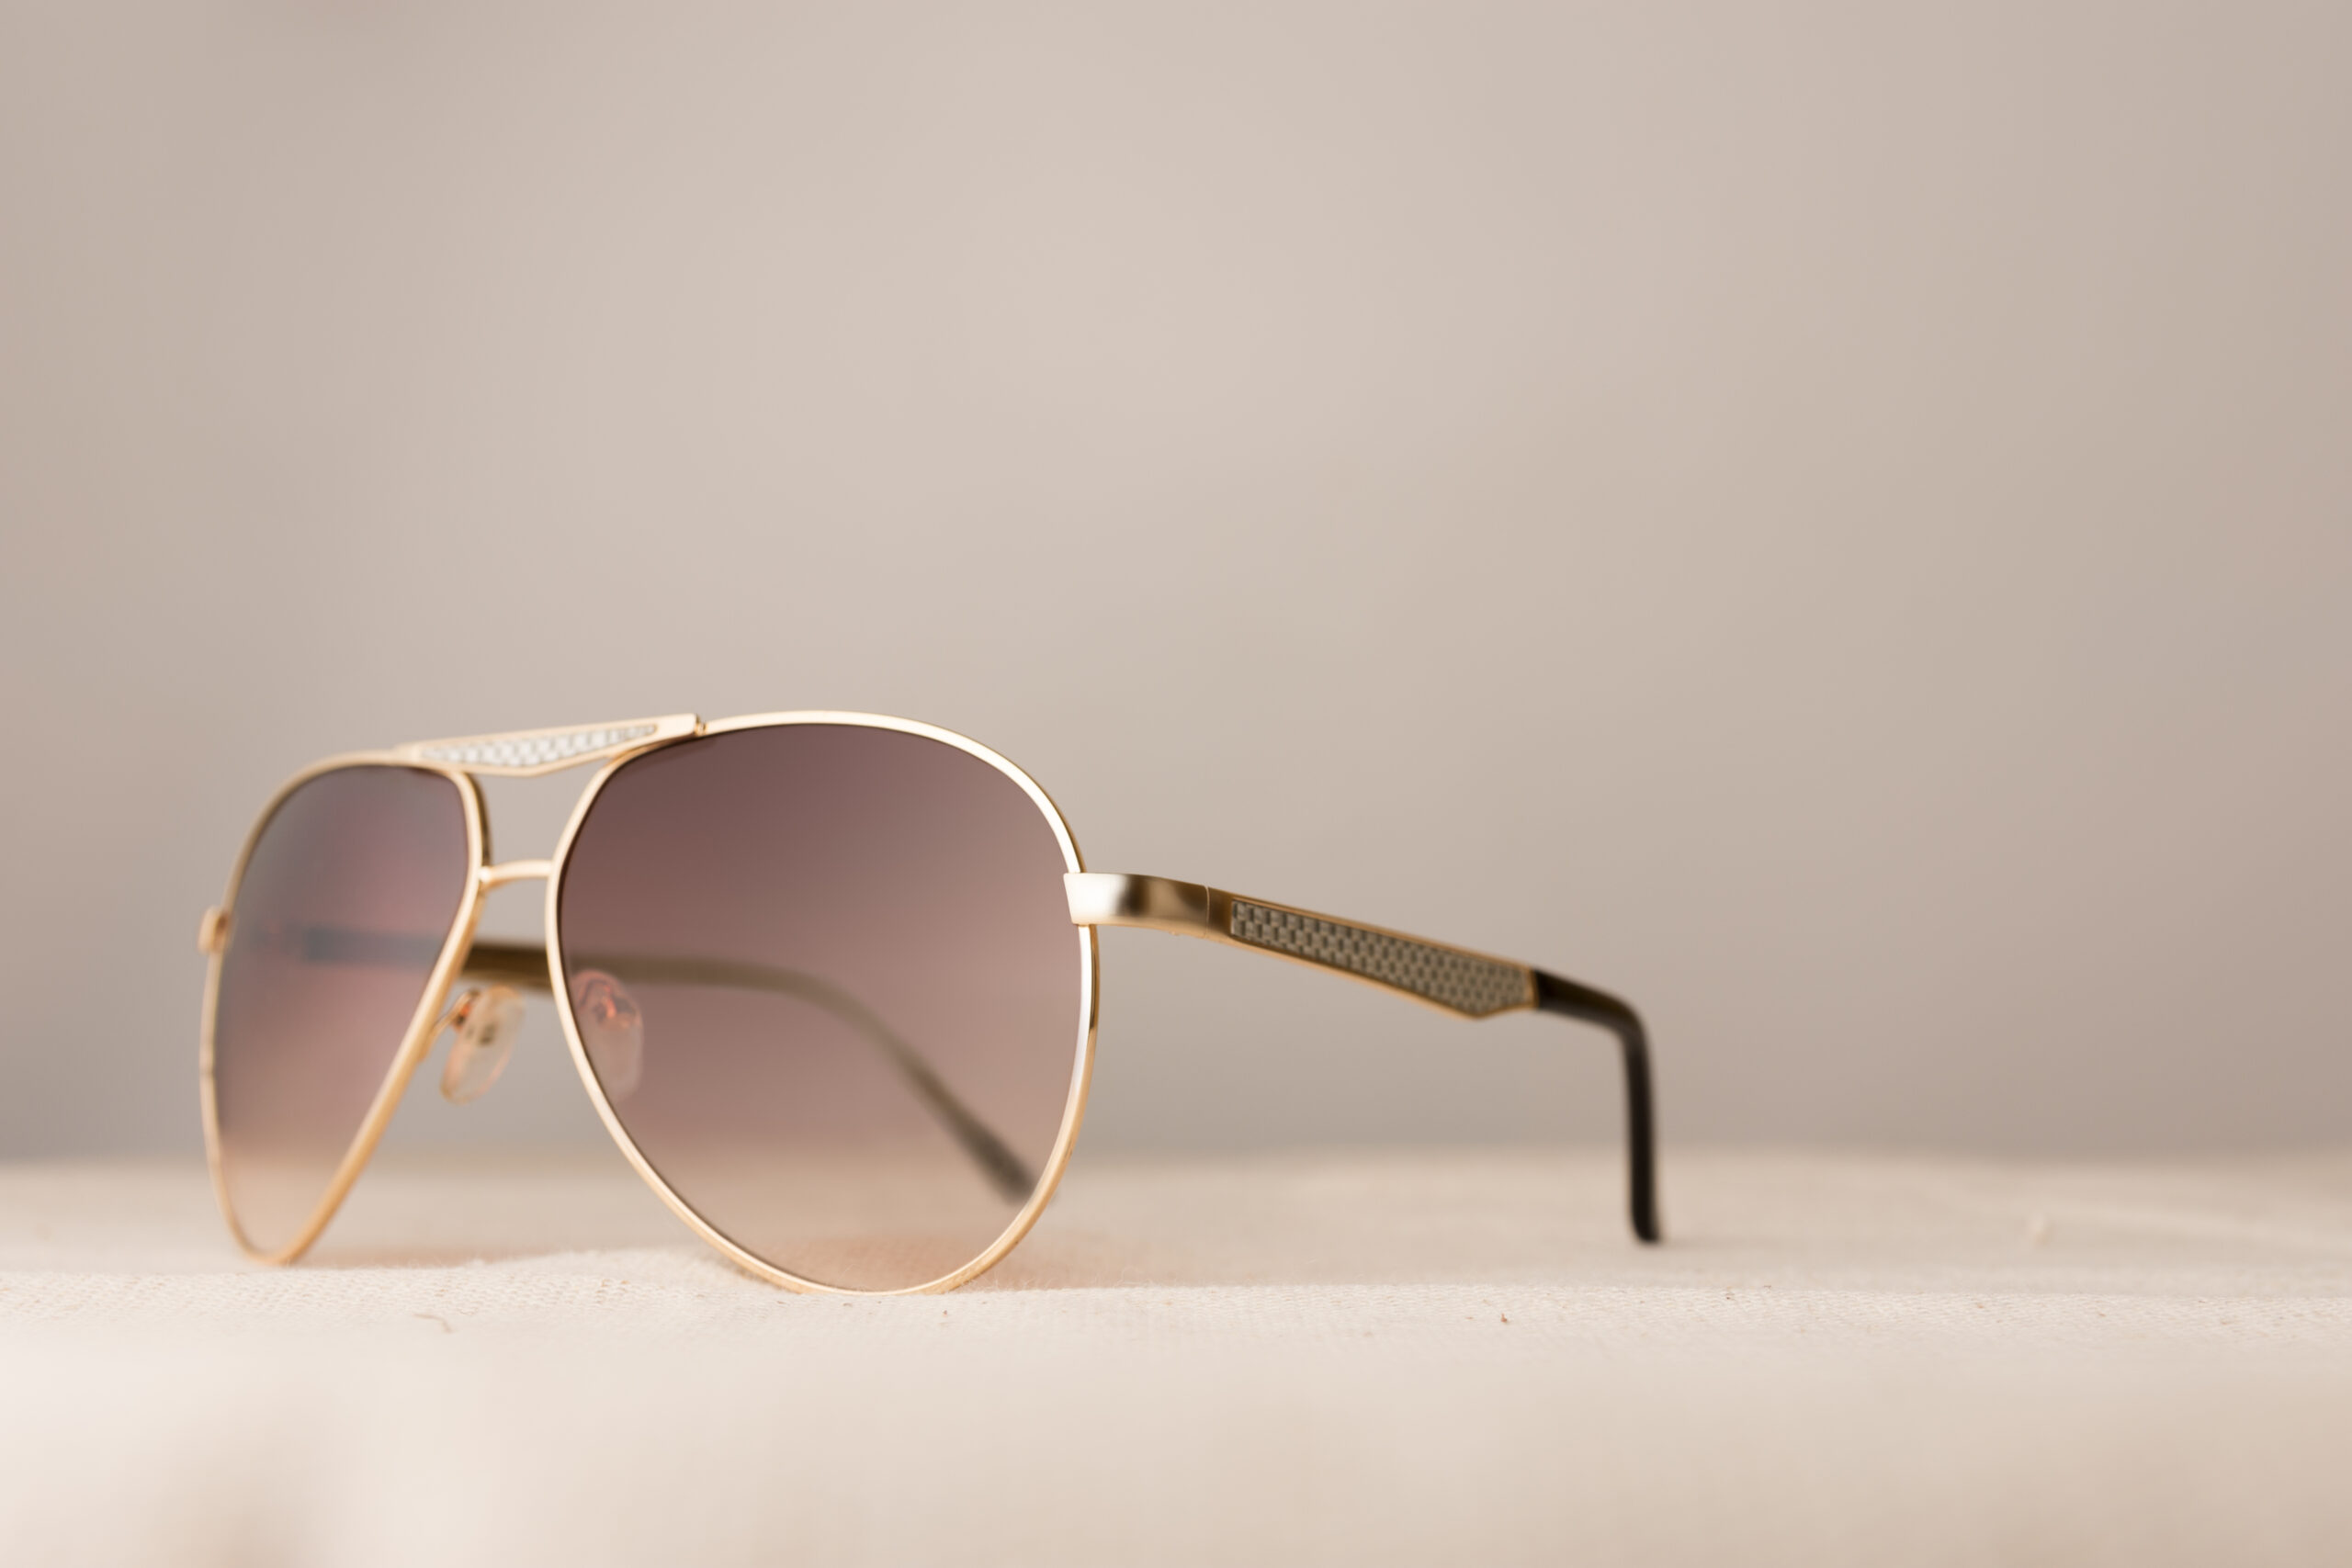 Fashionable ladies sunglasses on plain background with copy space for text.